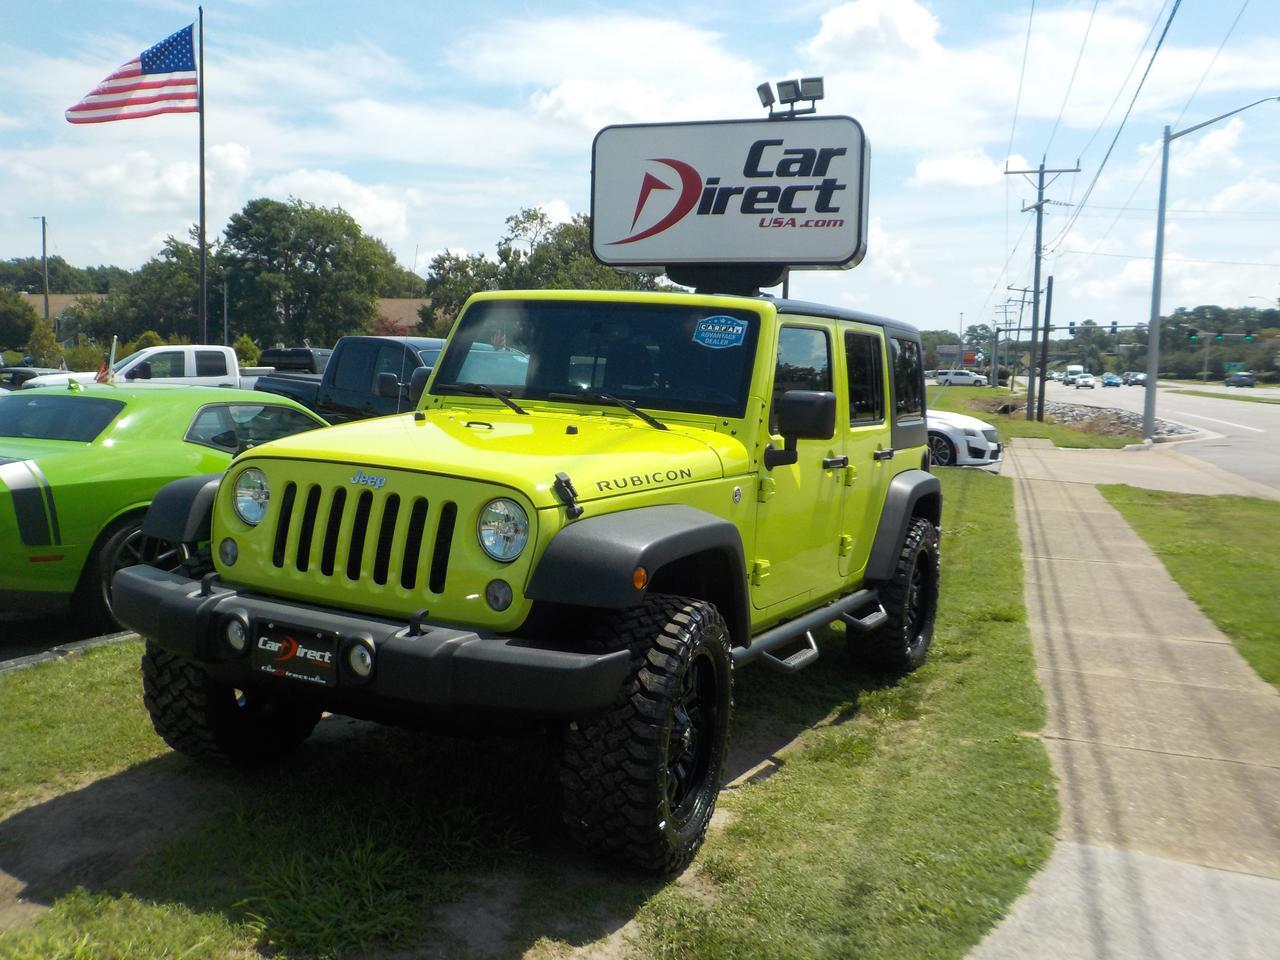 2016 JEEP WRANGLER RUBICON UNLIMITED 4X4, FUEL RIMS, HARD TOP, RUNNING BOARDS, FENDER FLARES, UCONNECT, AUXILIARY PORT Virginia Beach VA